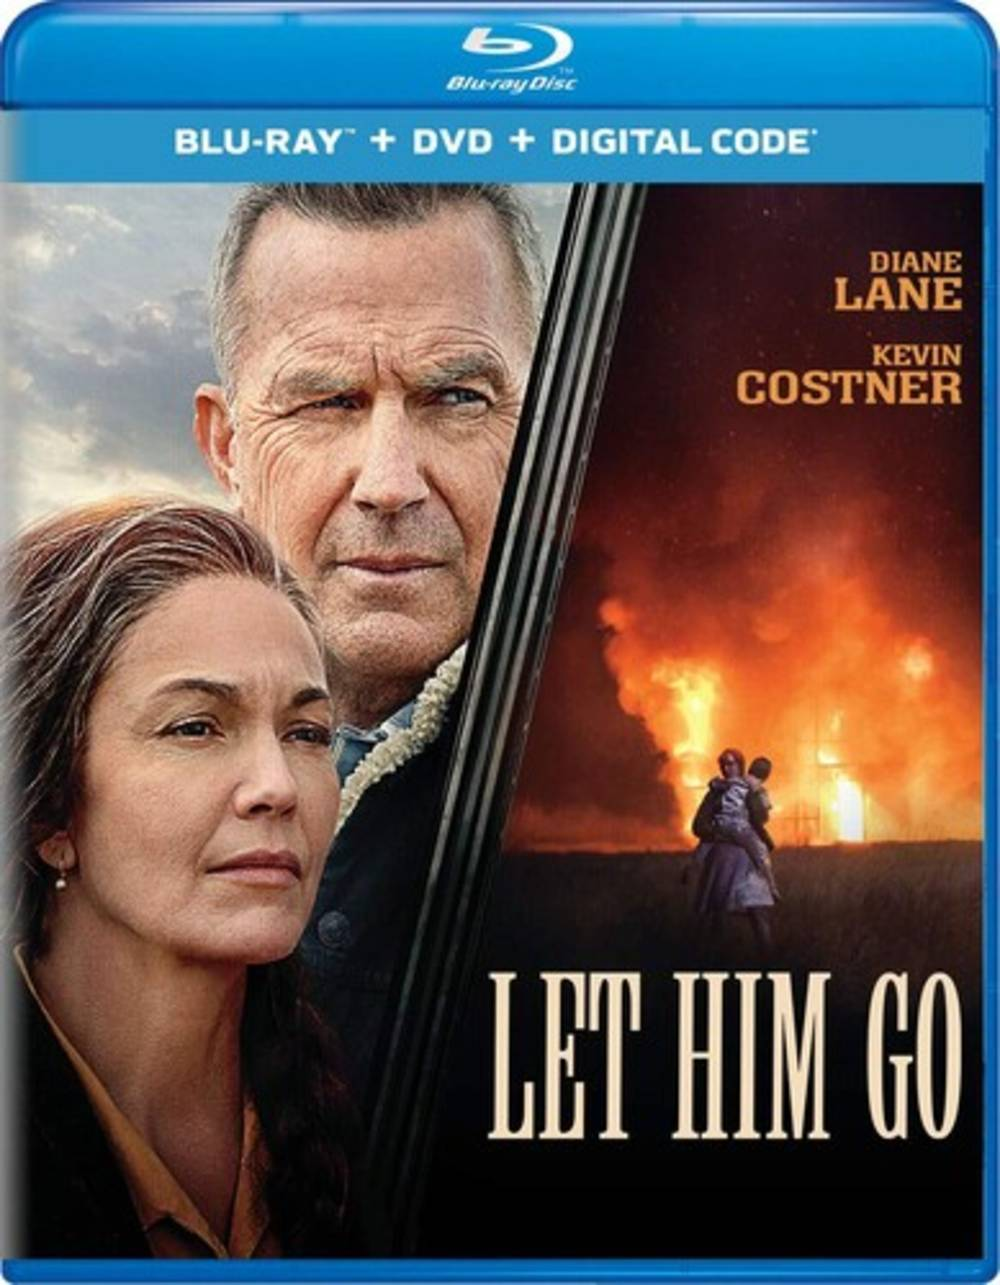 Let Him Go [Movie] - Let Him Go